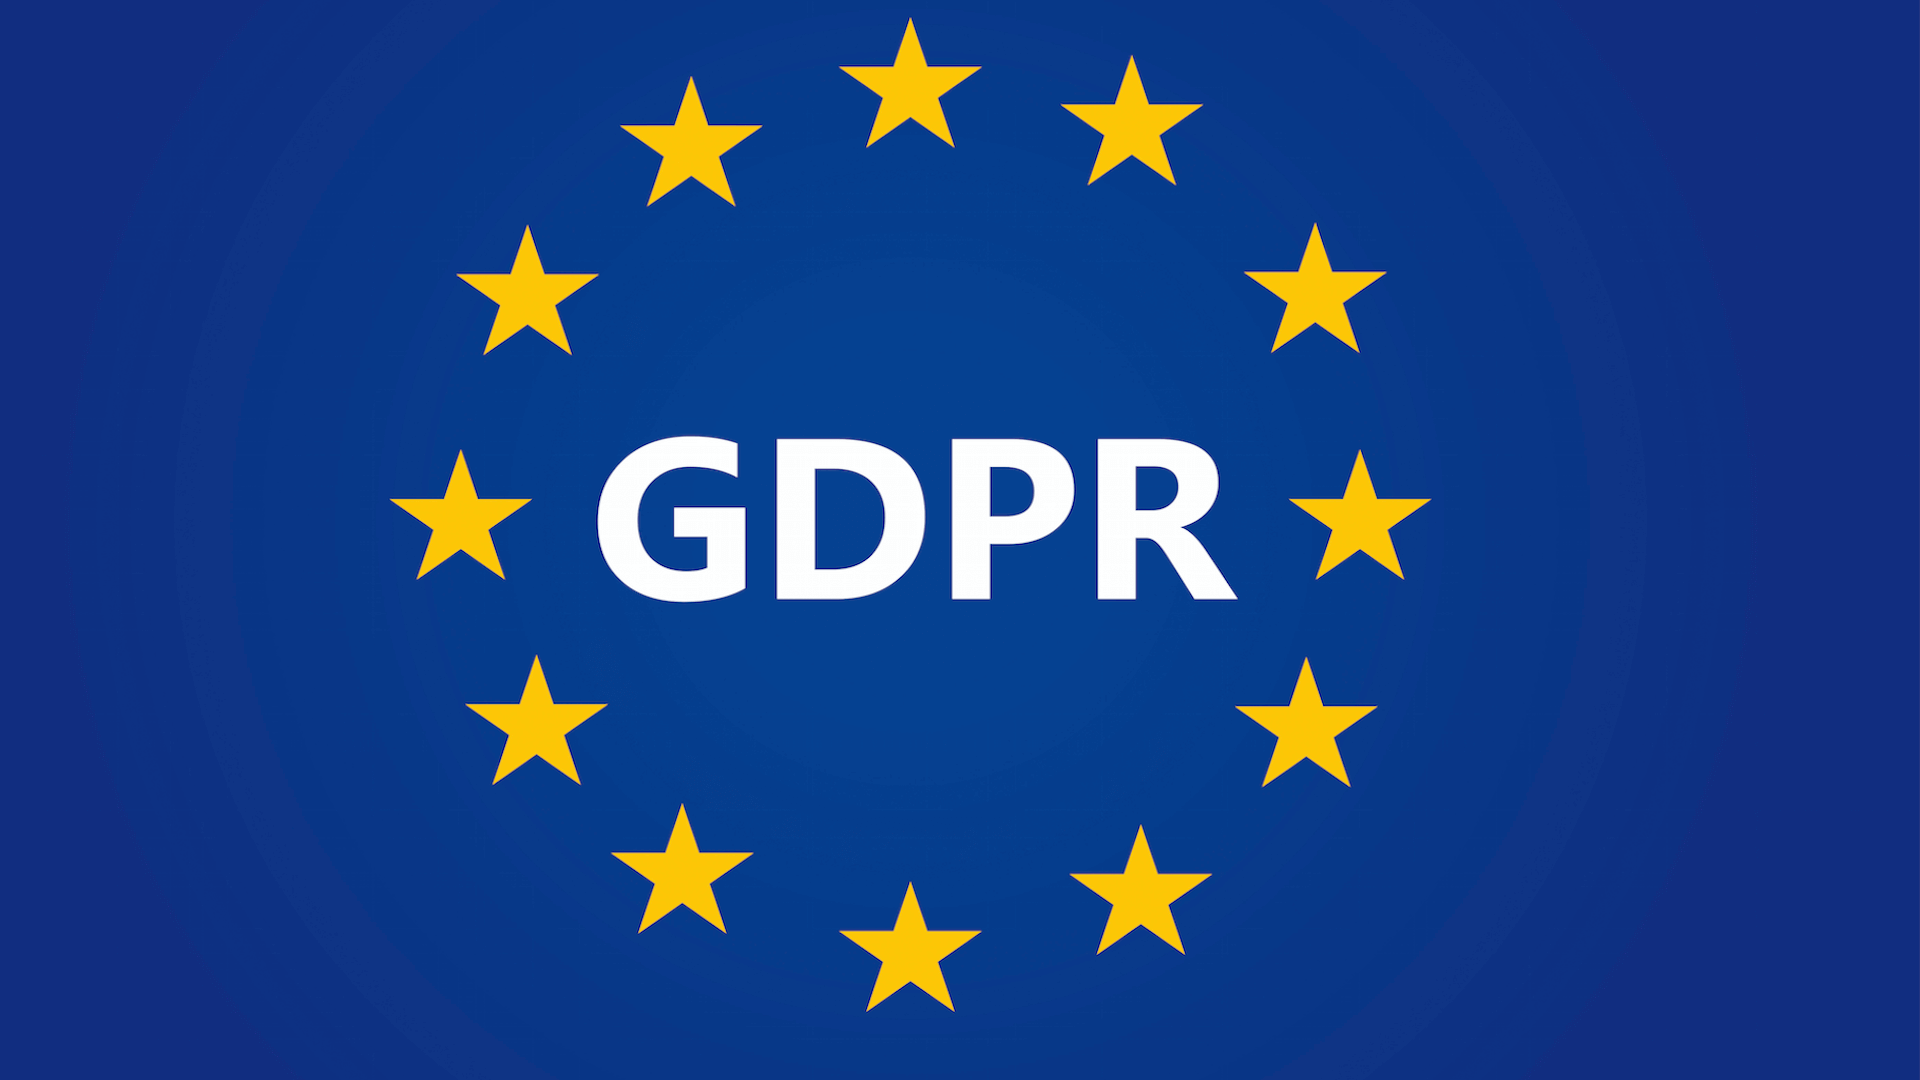 Che cos'è il GDPR (General Data Protection Regulation)